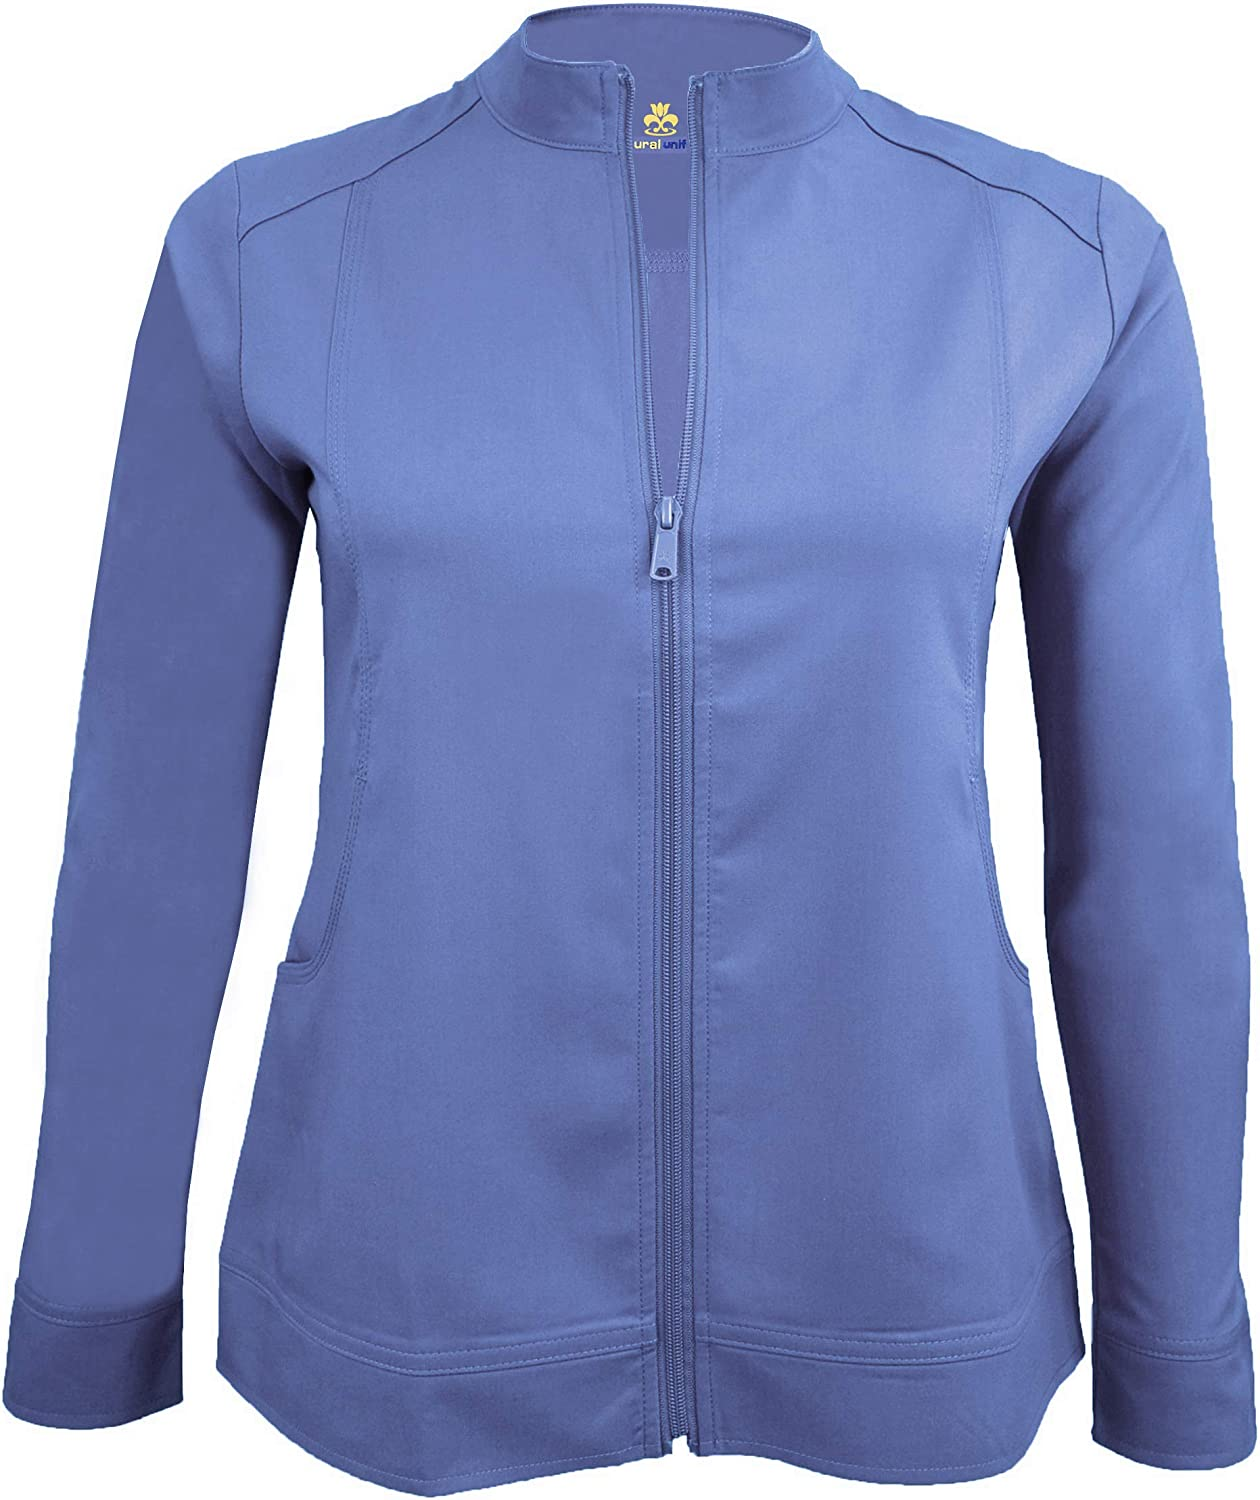 Natural Uniforms Women's Ultra Soft Stretch Front Zip Workwear Warm-Up Jacket (5200)